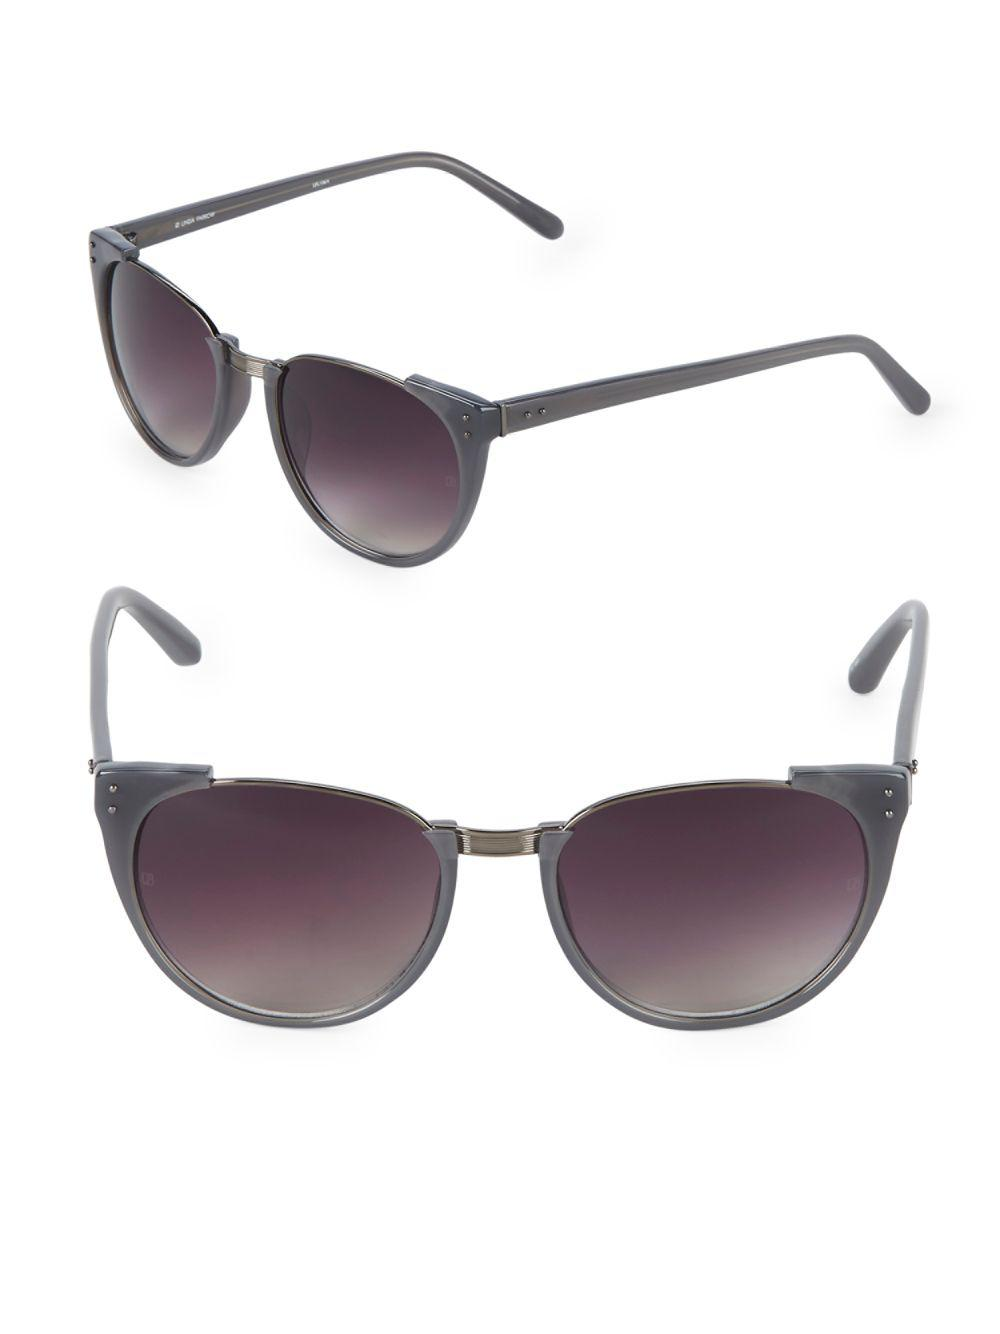 b6f826179c4 Linda Farrow 54mm Cat-eye Sunglasses in Metallic - Lyst